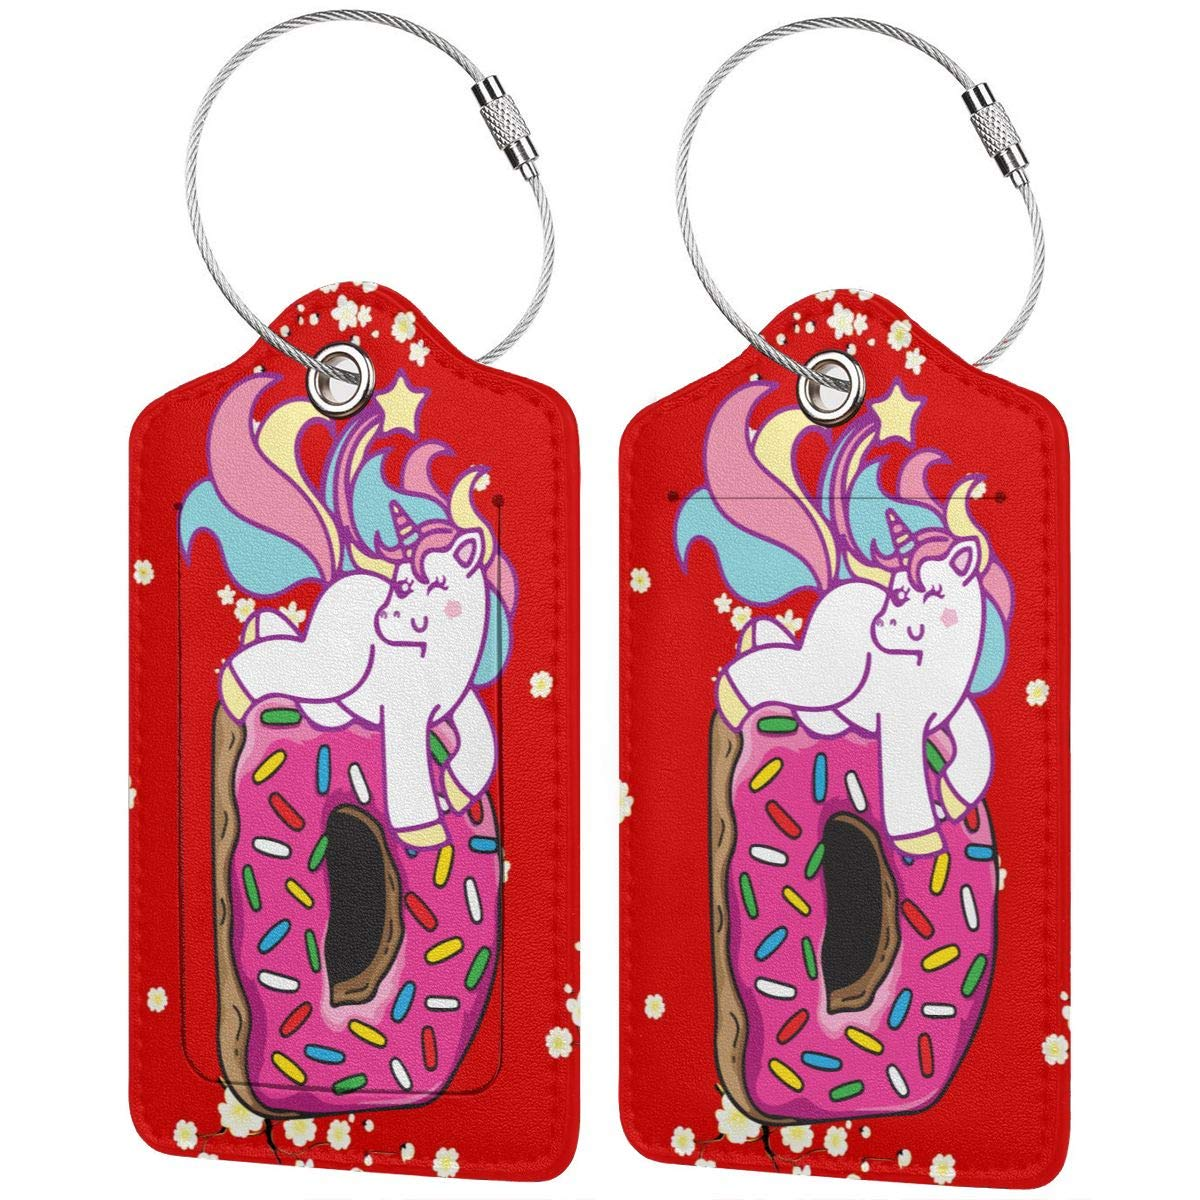 Unicorn Hug Donut Travel Luggage Tags With Full Privacy Cover Leather Case And Stainless Steel Loop